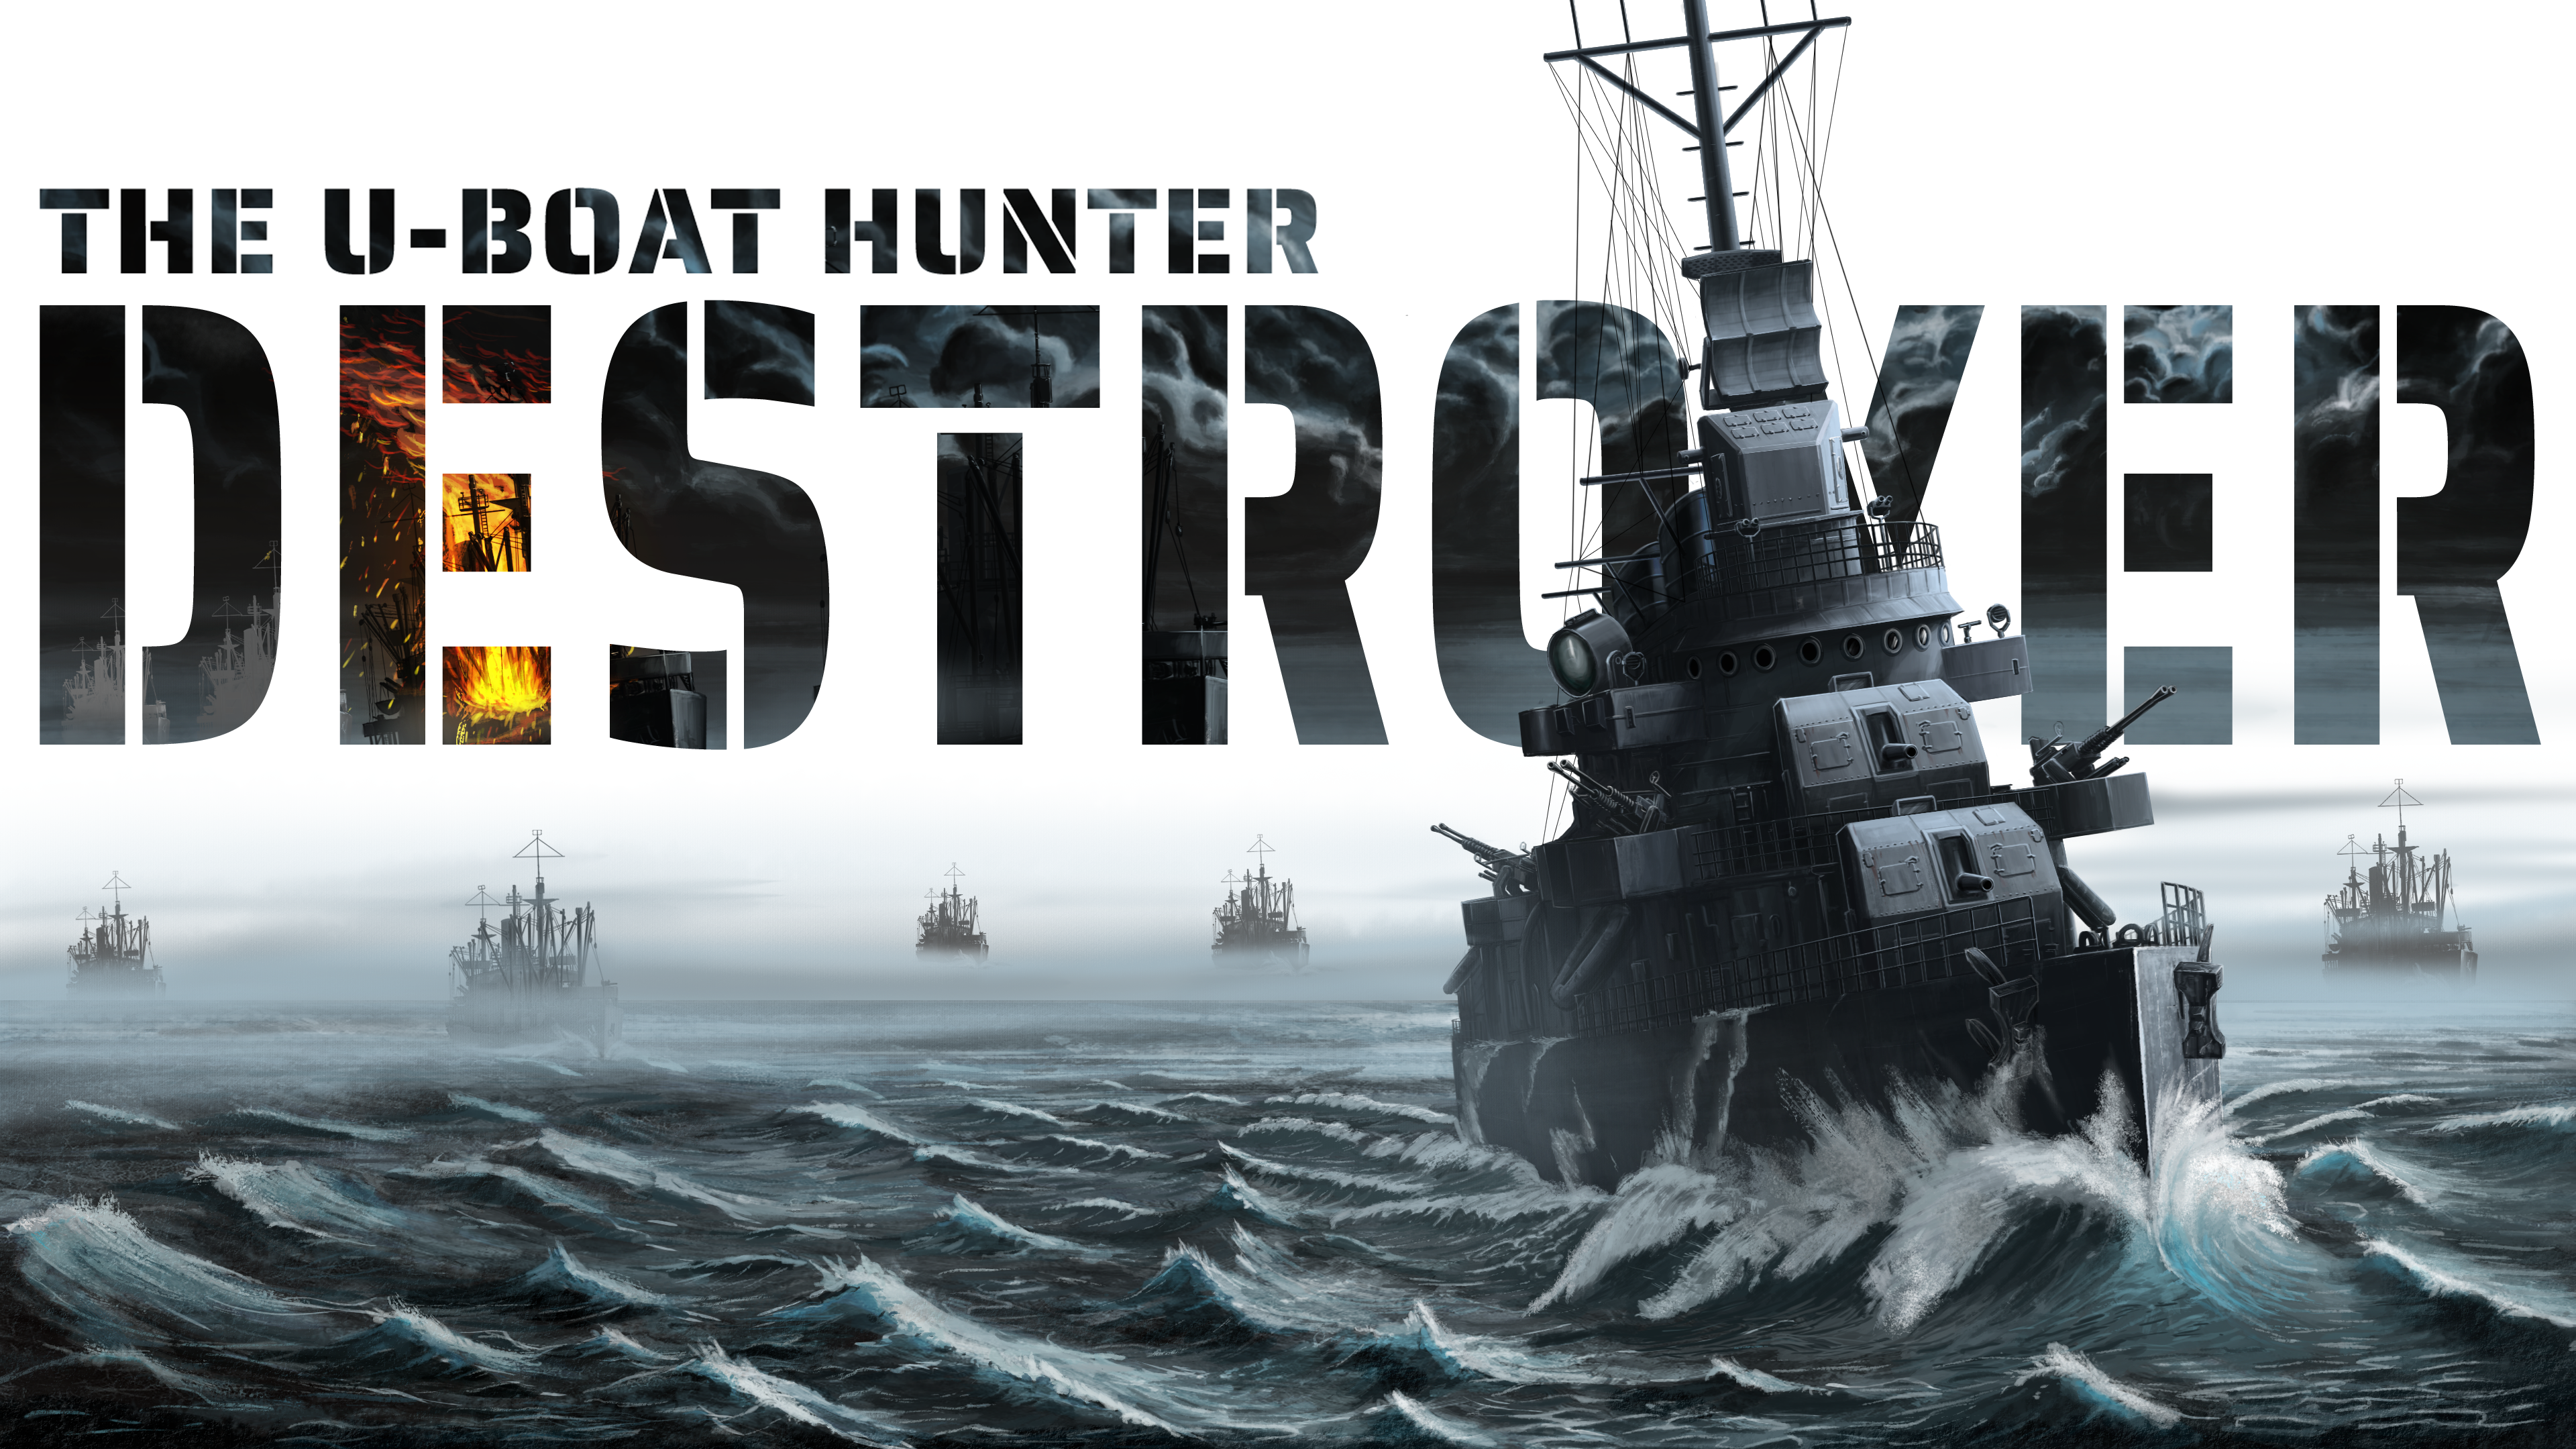 DESTROYER The Uboat Hunter by Iron Wolf Studio